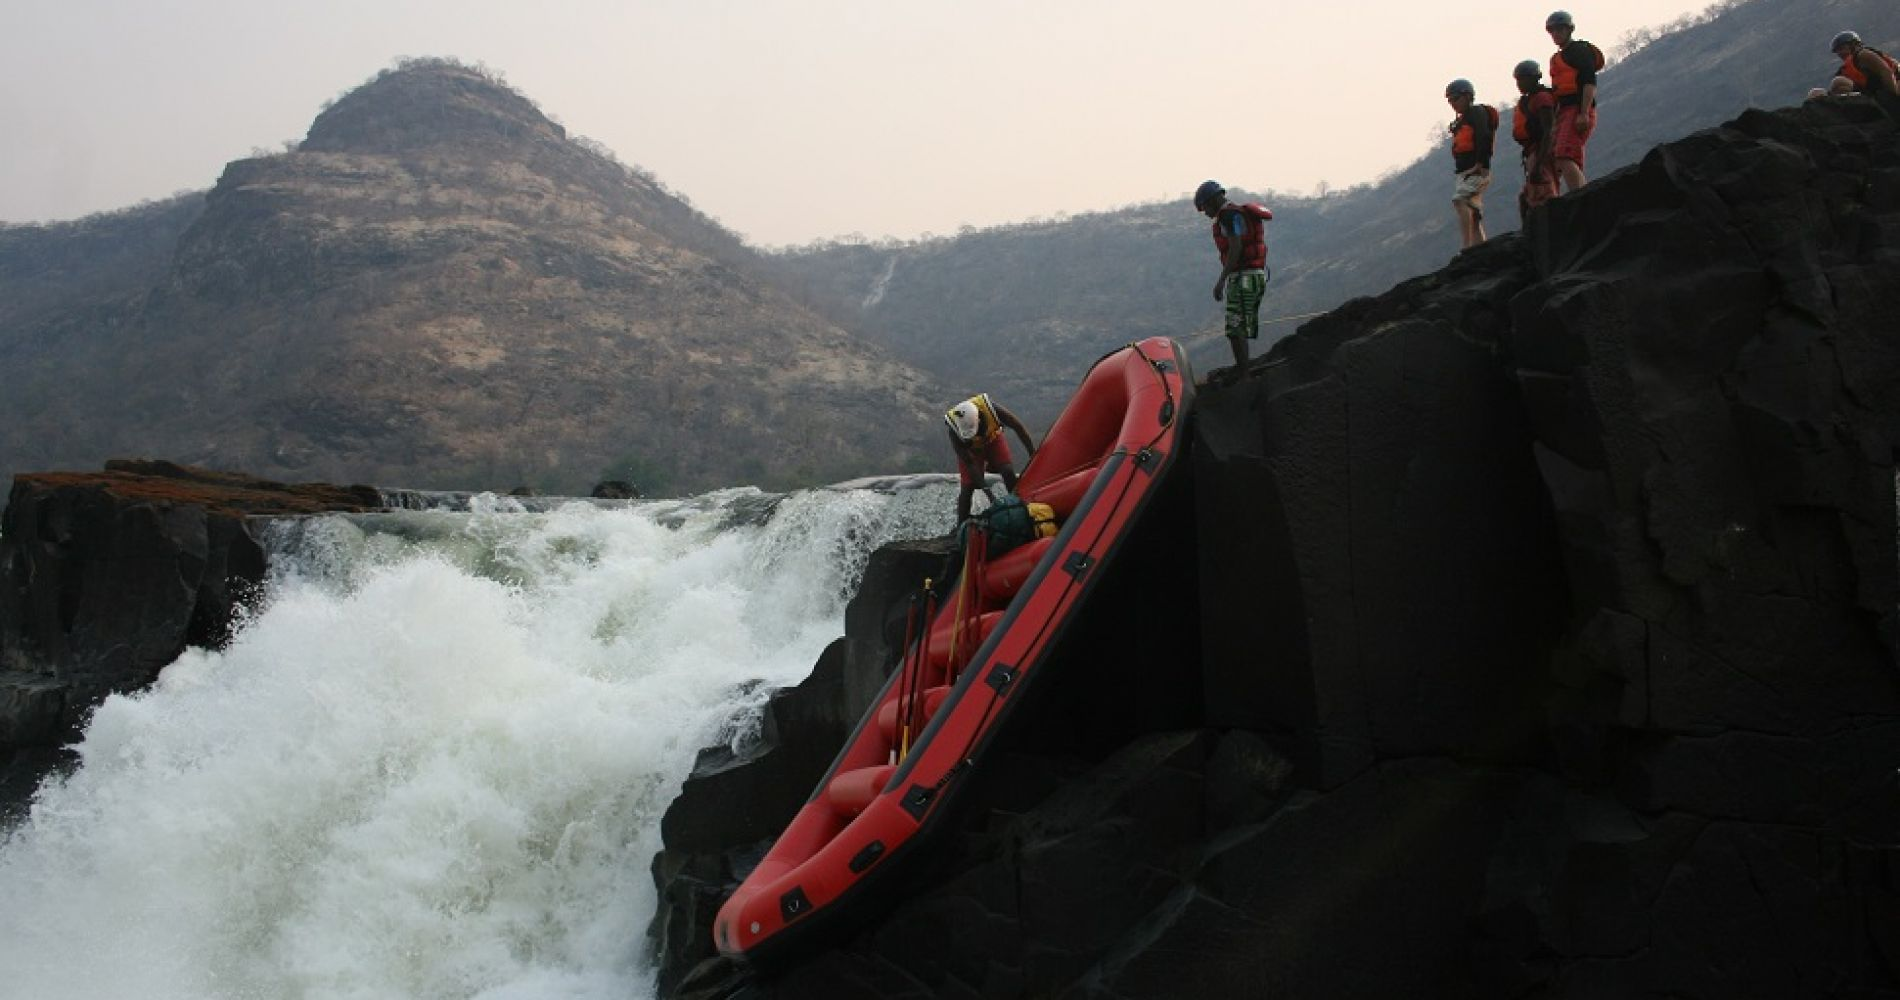 Zimbabwe Victoria Falls Whitewater Rafting experience gifts